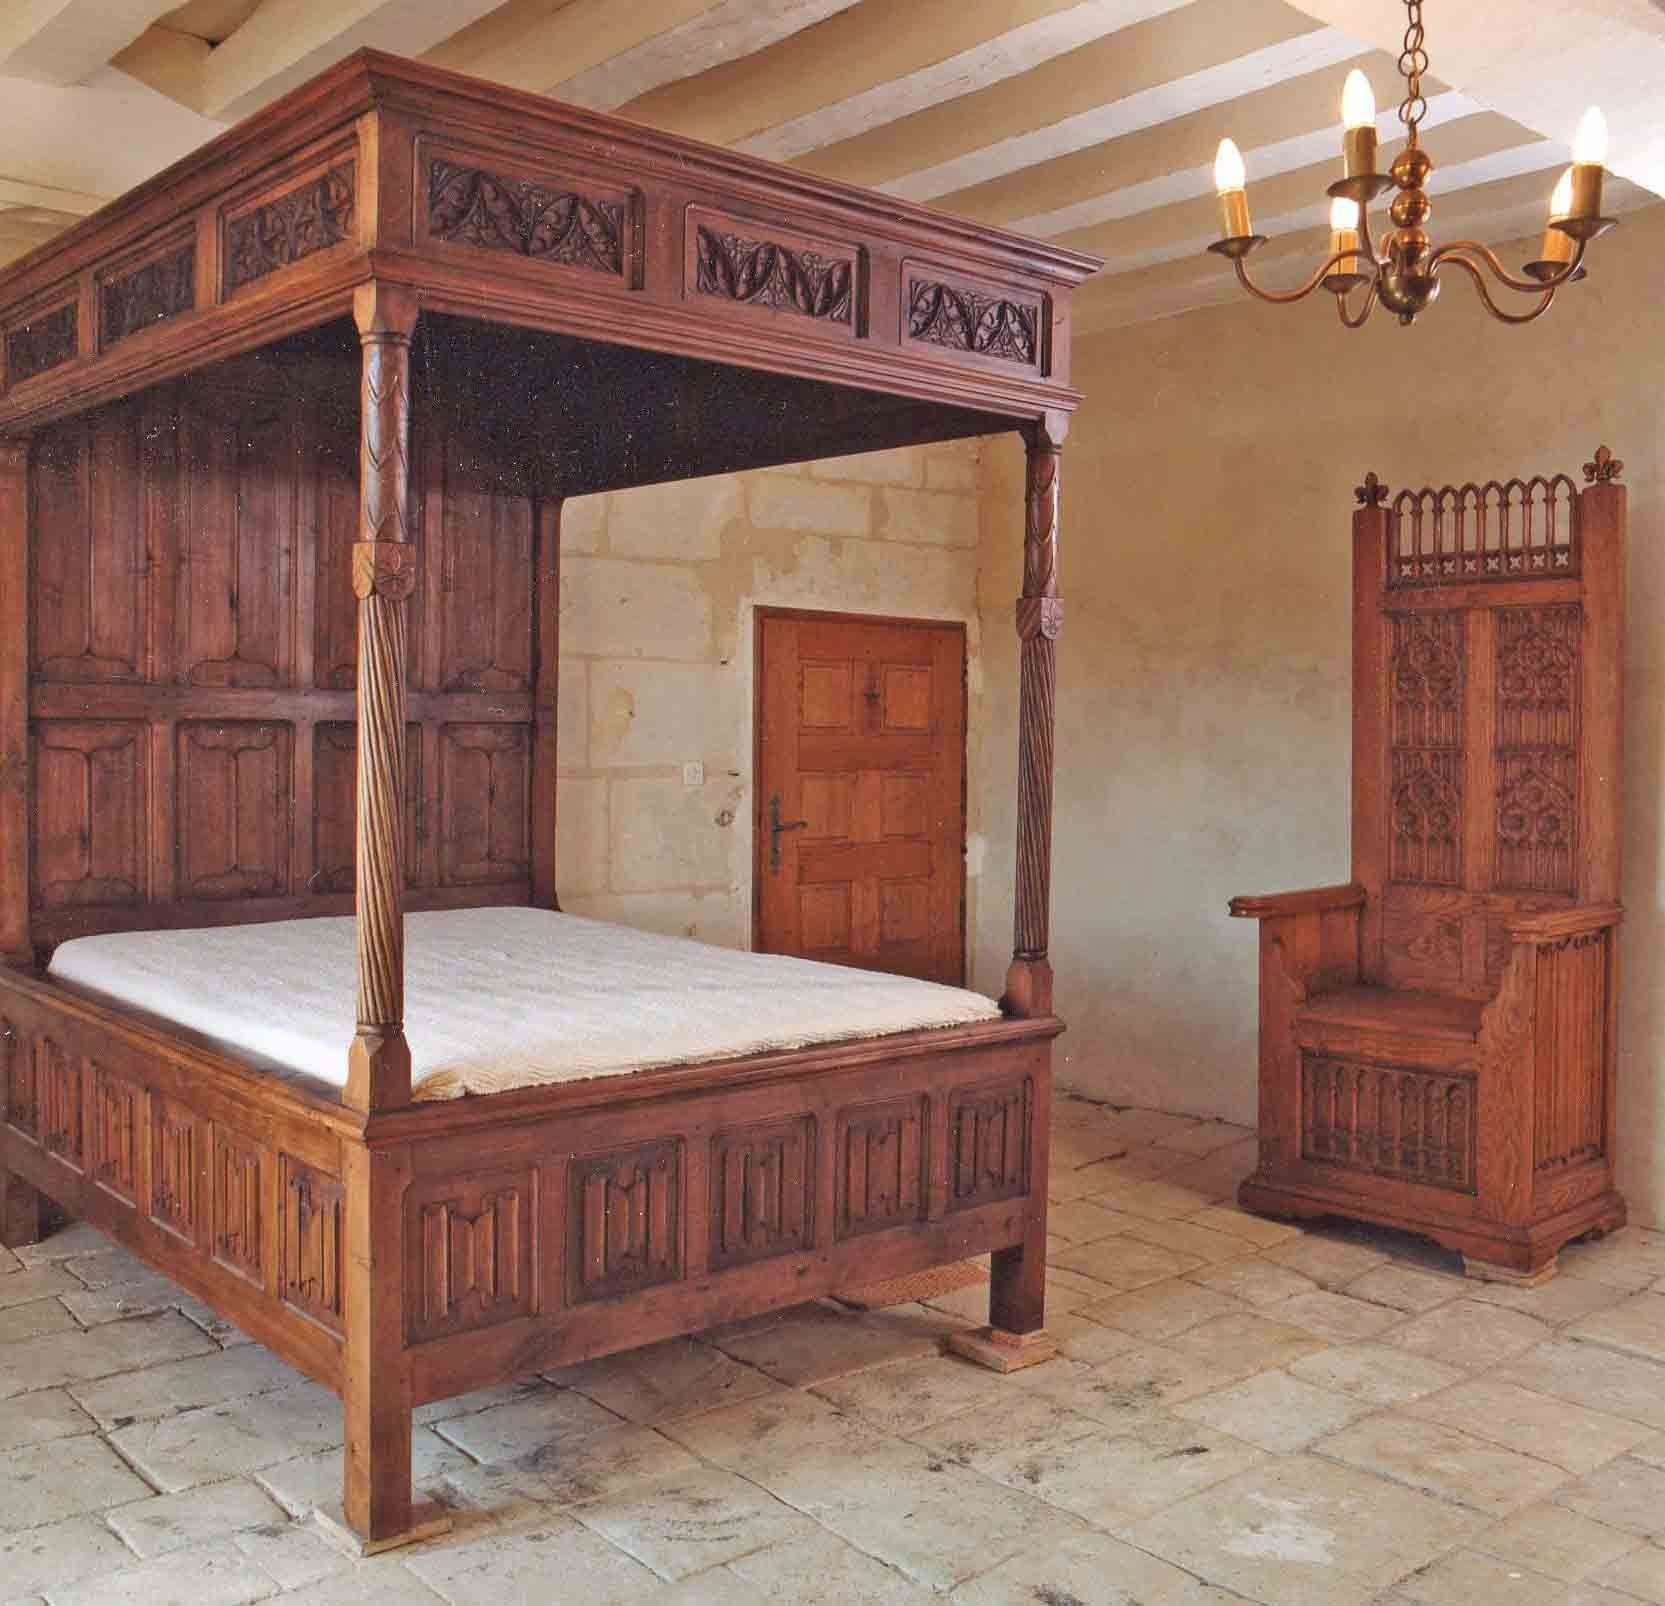 Search For Furniture: Medieval Canopy Bed - Google Search